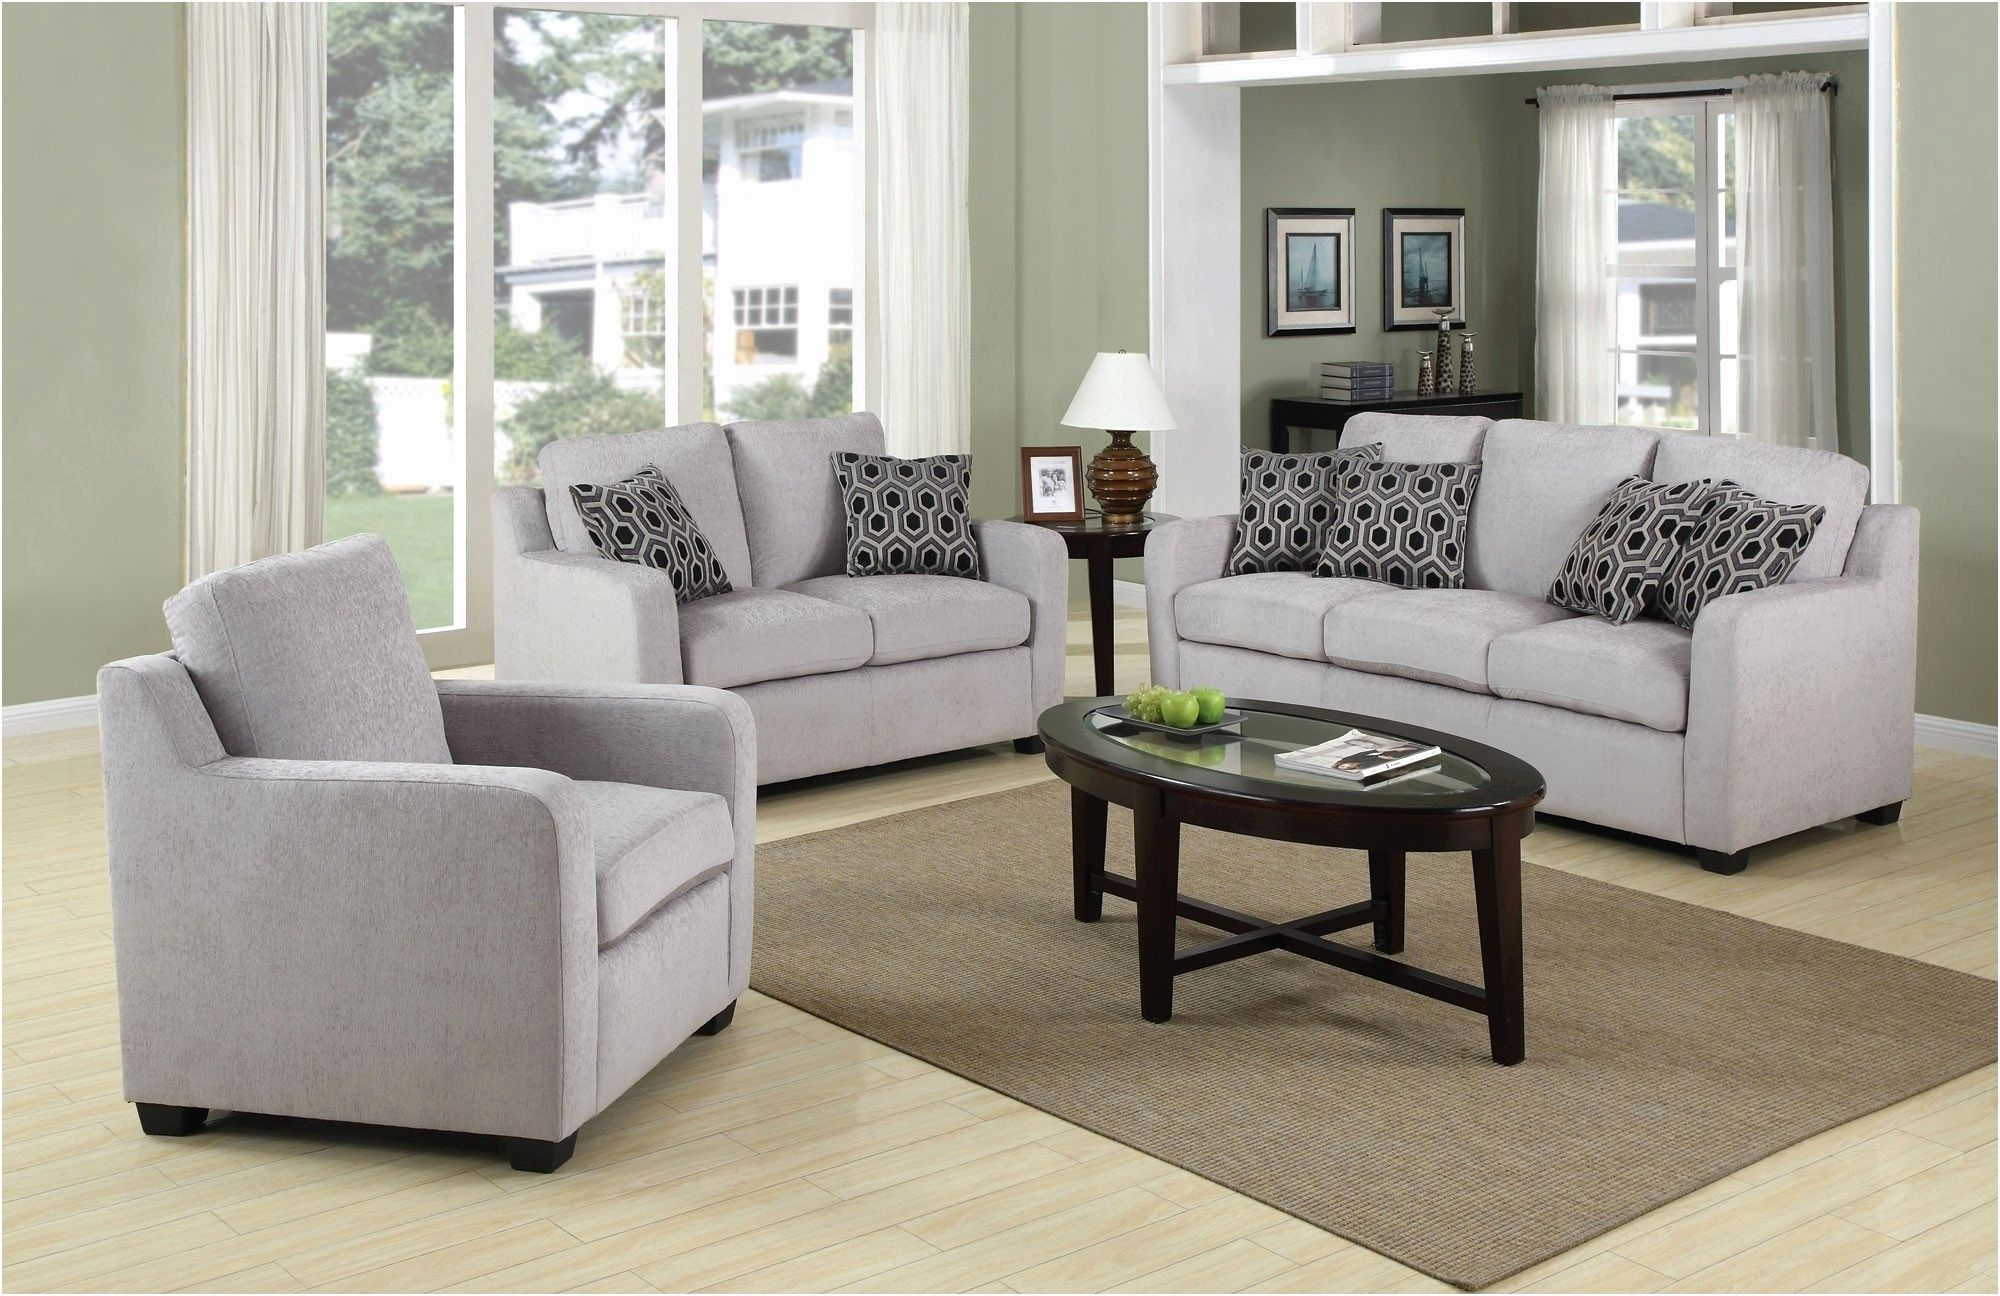 Good Sofa And Loveseat Sets Under 500 Picture Sofa And Loveseat